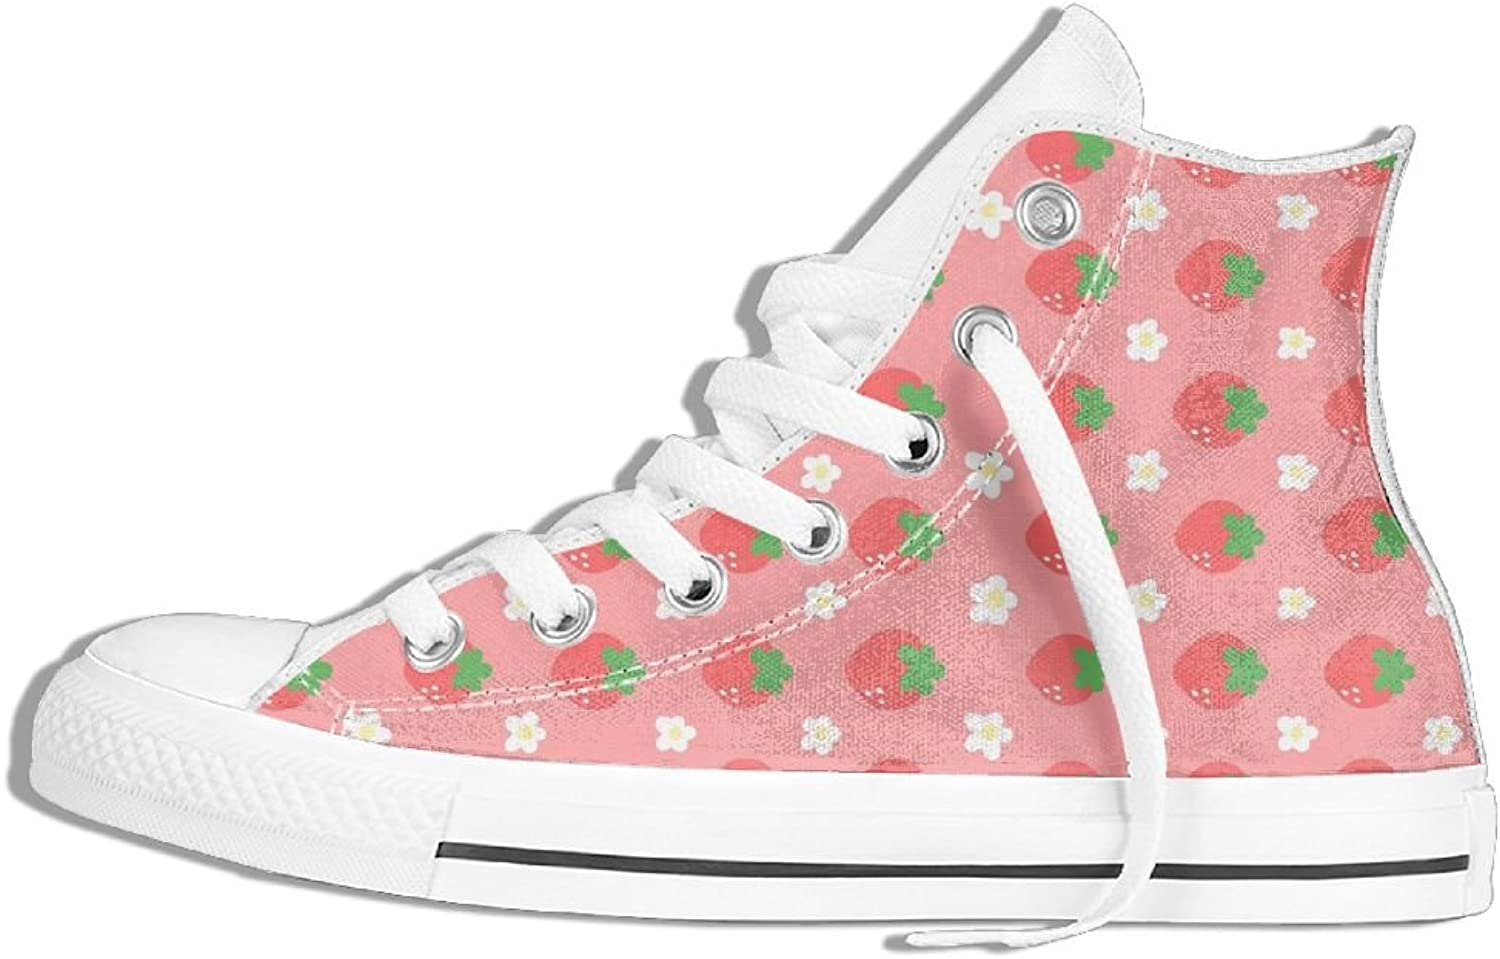 Unisex Hi-Top Canvas Sneakers Pink Strawberry Flowers Lace Up Anti-slip Running Trainers shoes